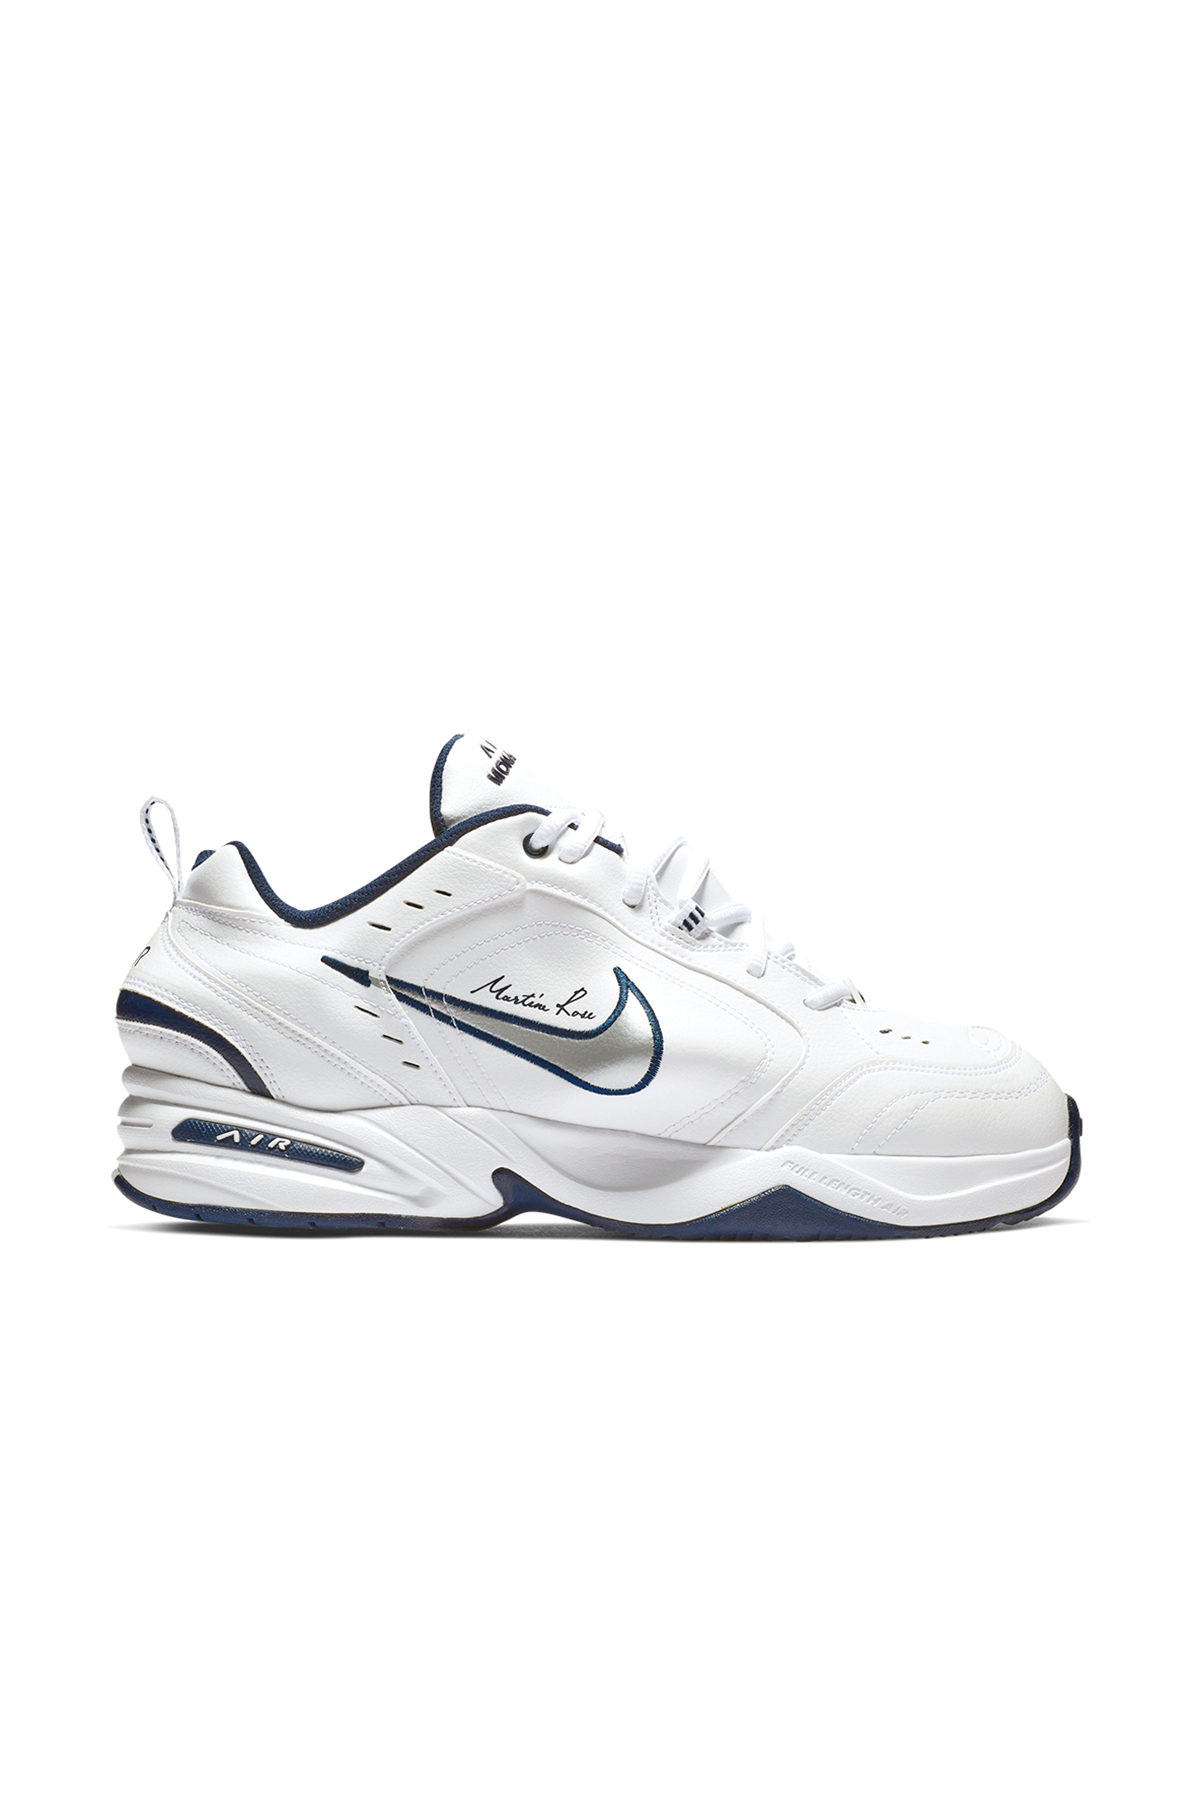 new style 3102f 68a94 Nike Air Monarch IV х Martine Rose Sneakers - KM20 Online Store